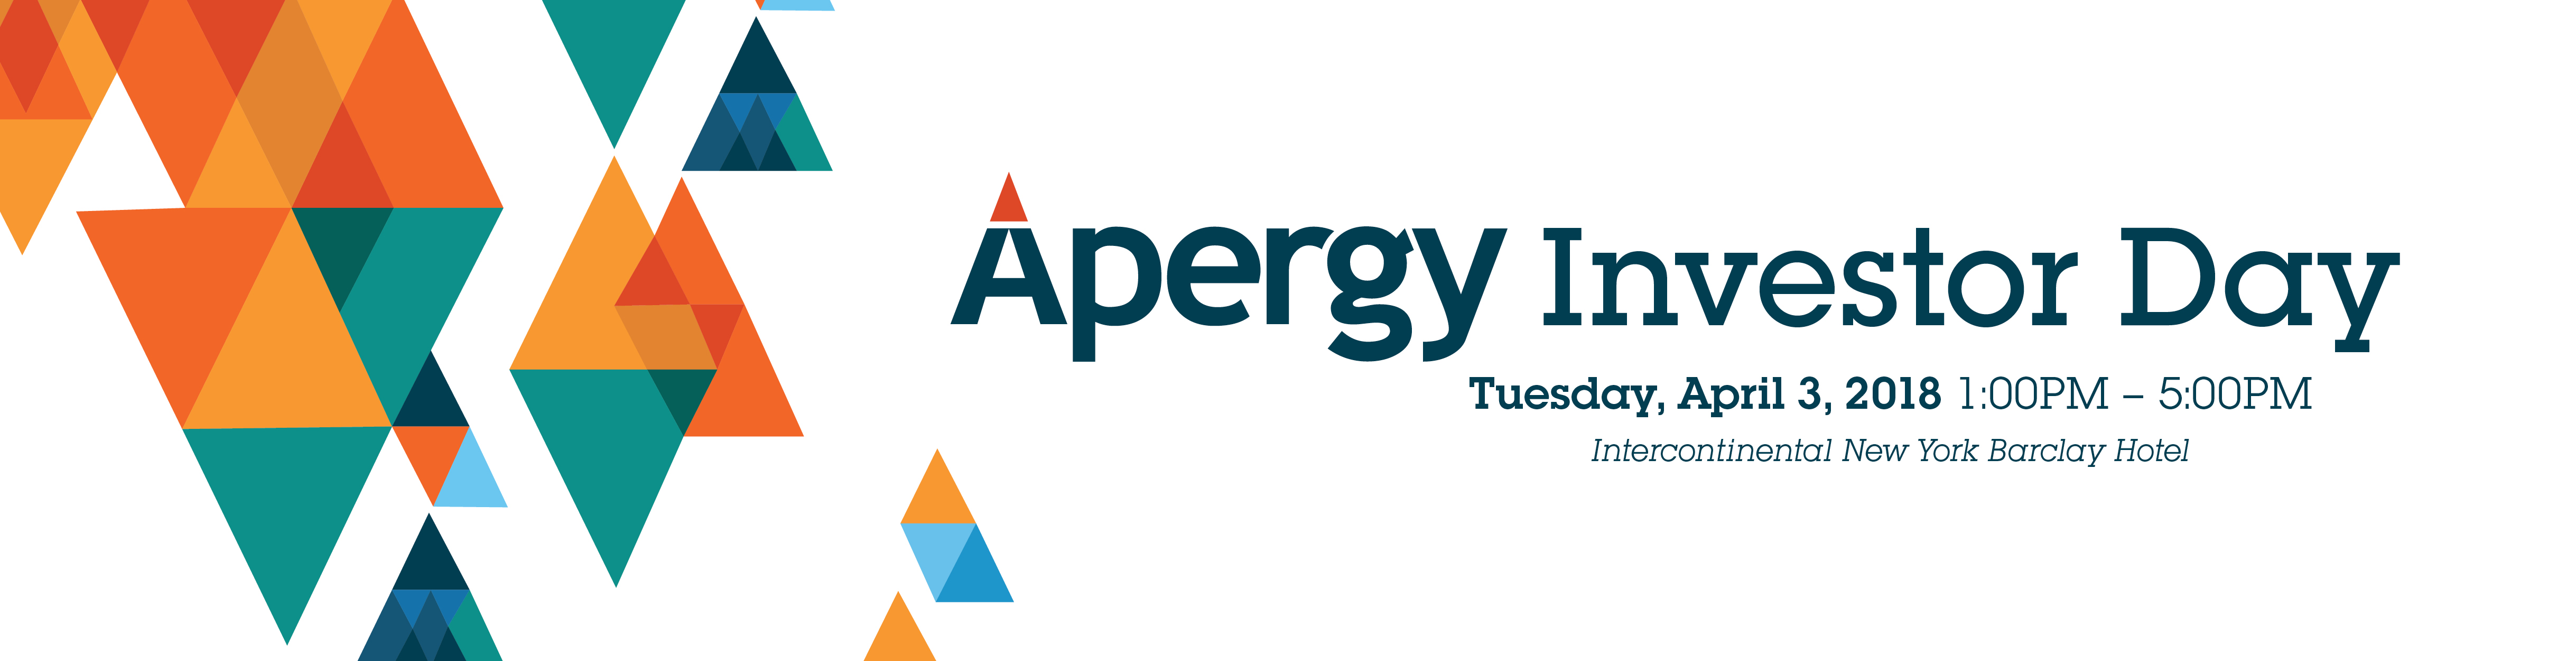 Apergy Investor Day- Save the Date